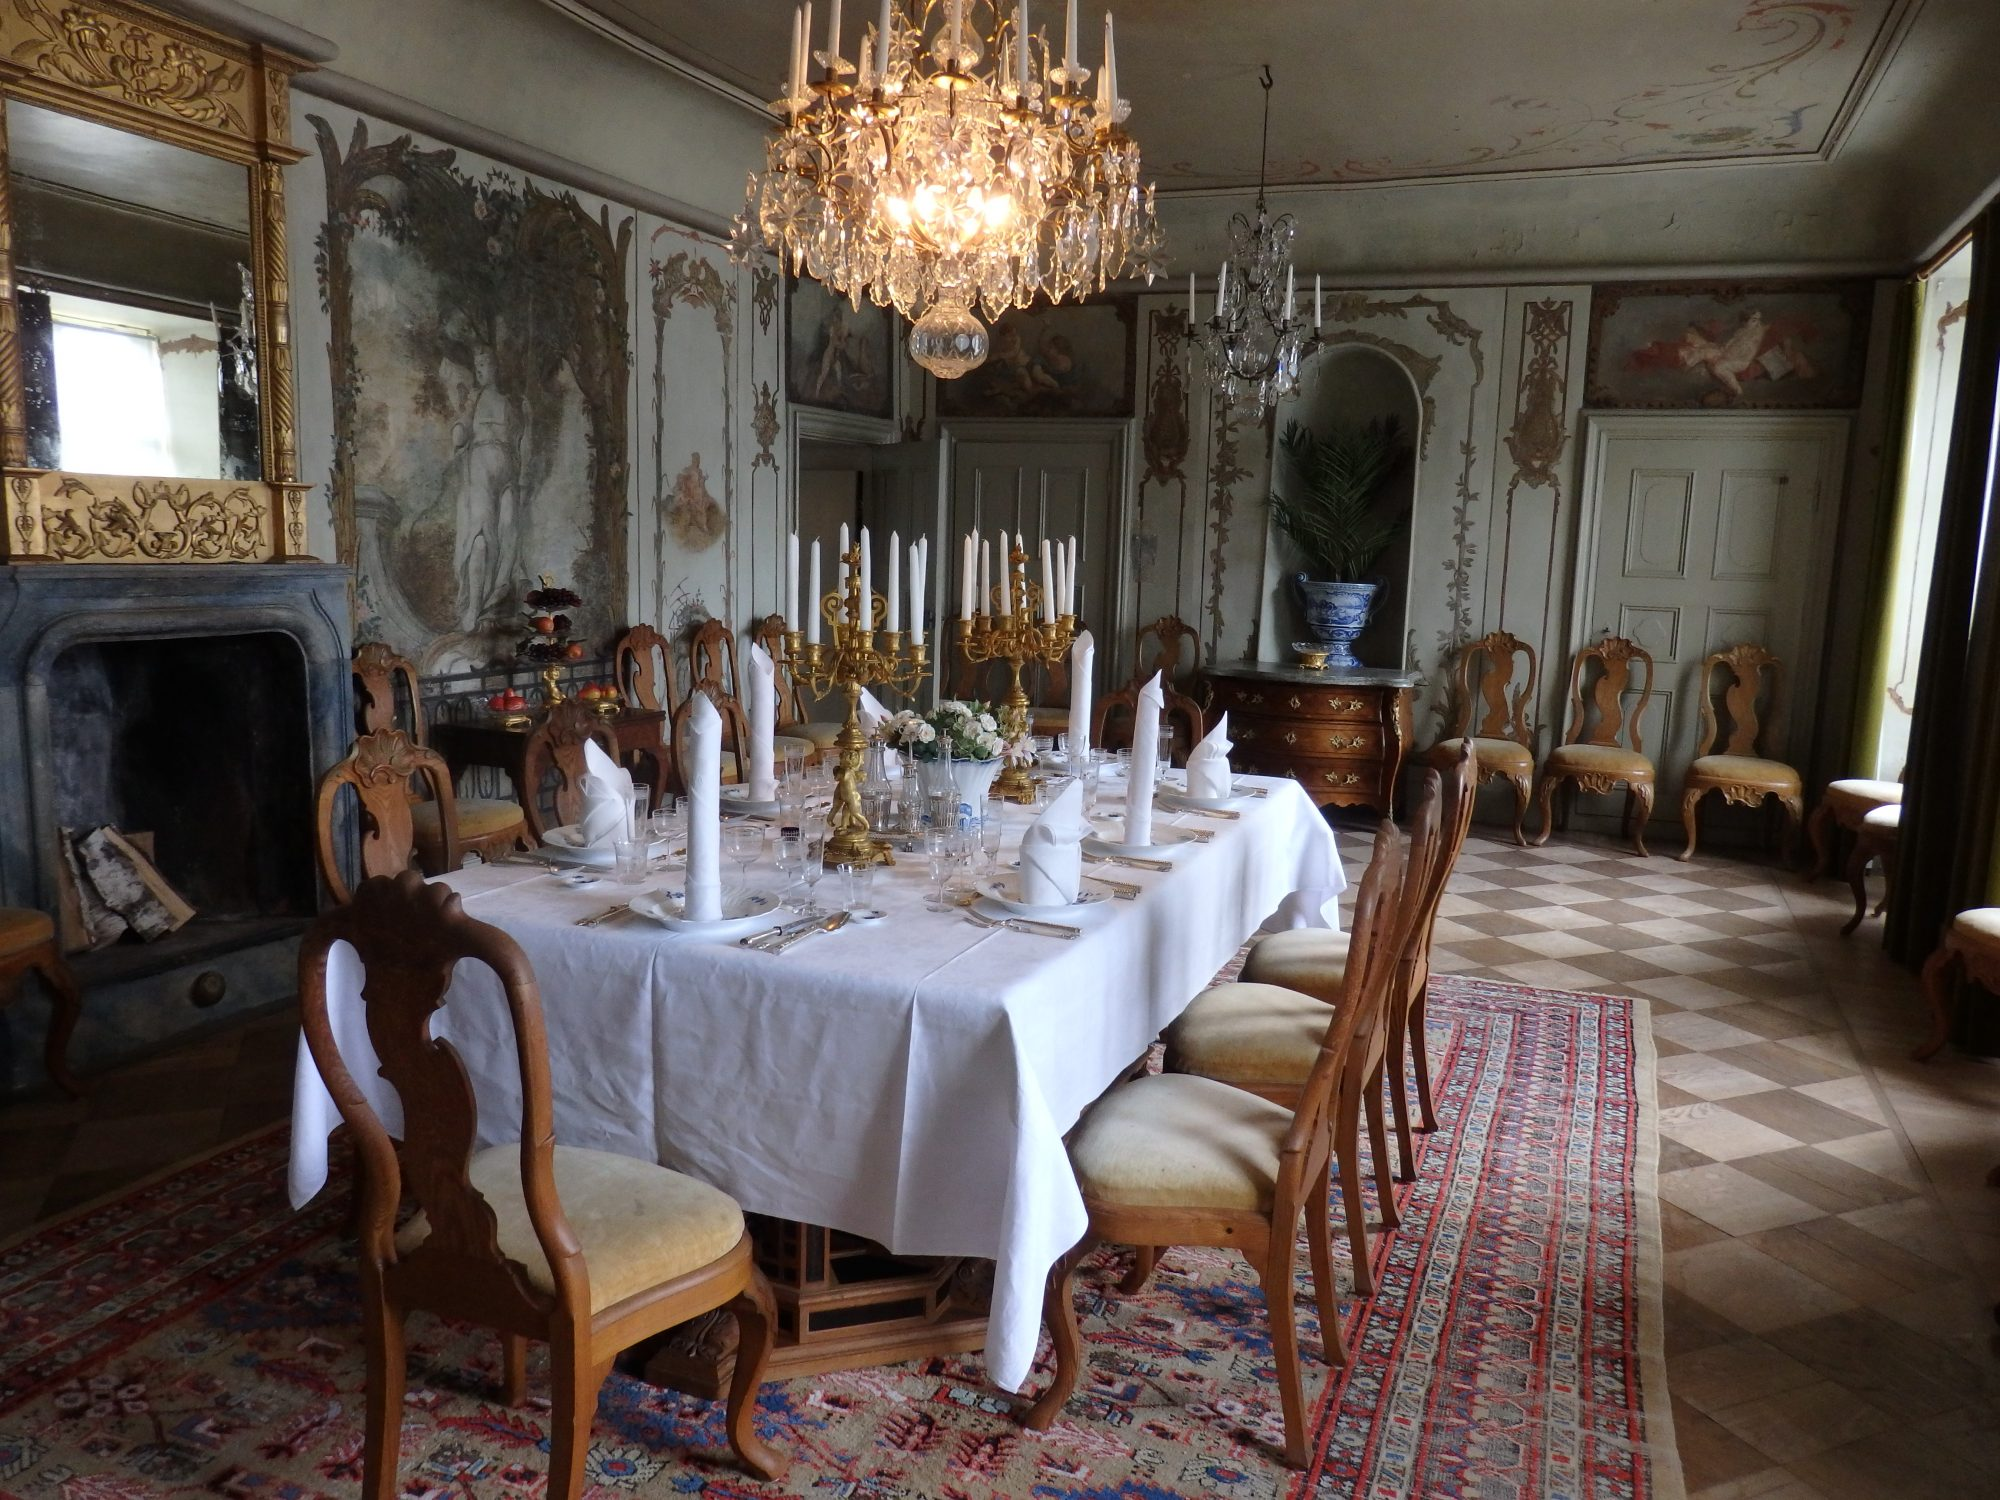 one of the many fully-furnished rooms of the manor house at Julita estate, Sweden